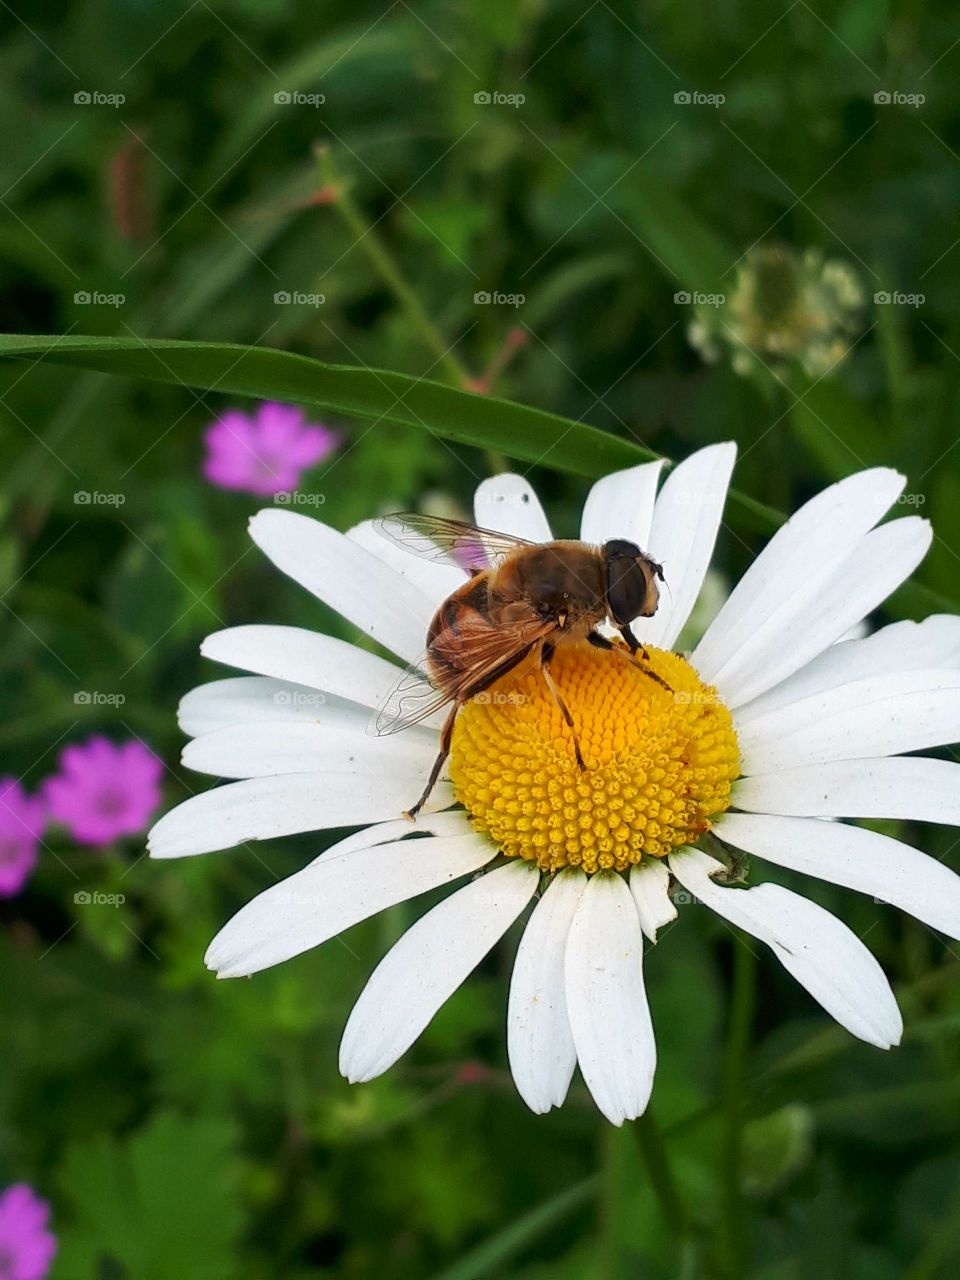 Bumblebee on a chamomile flower